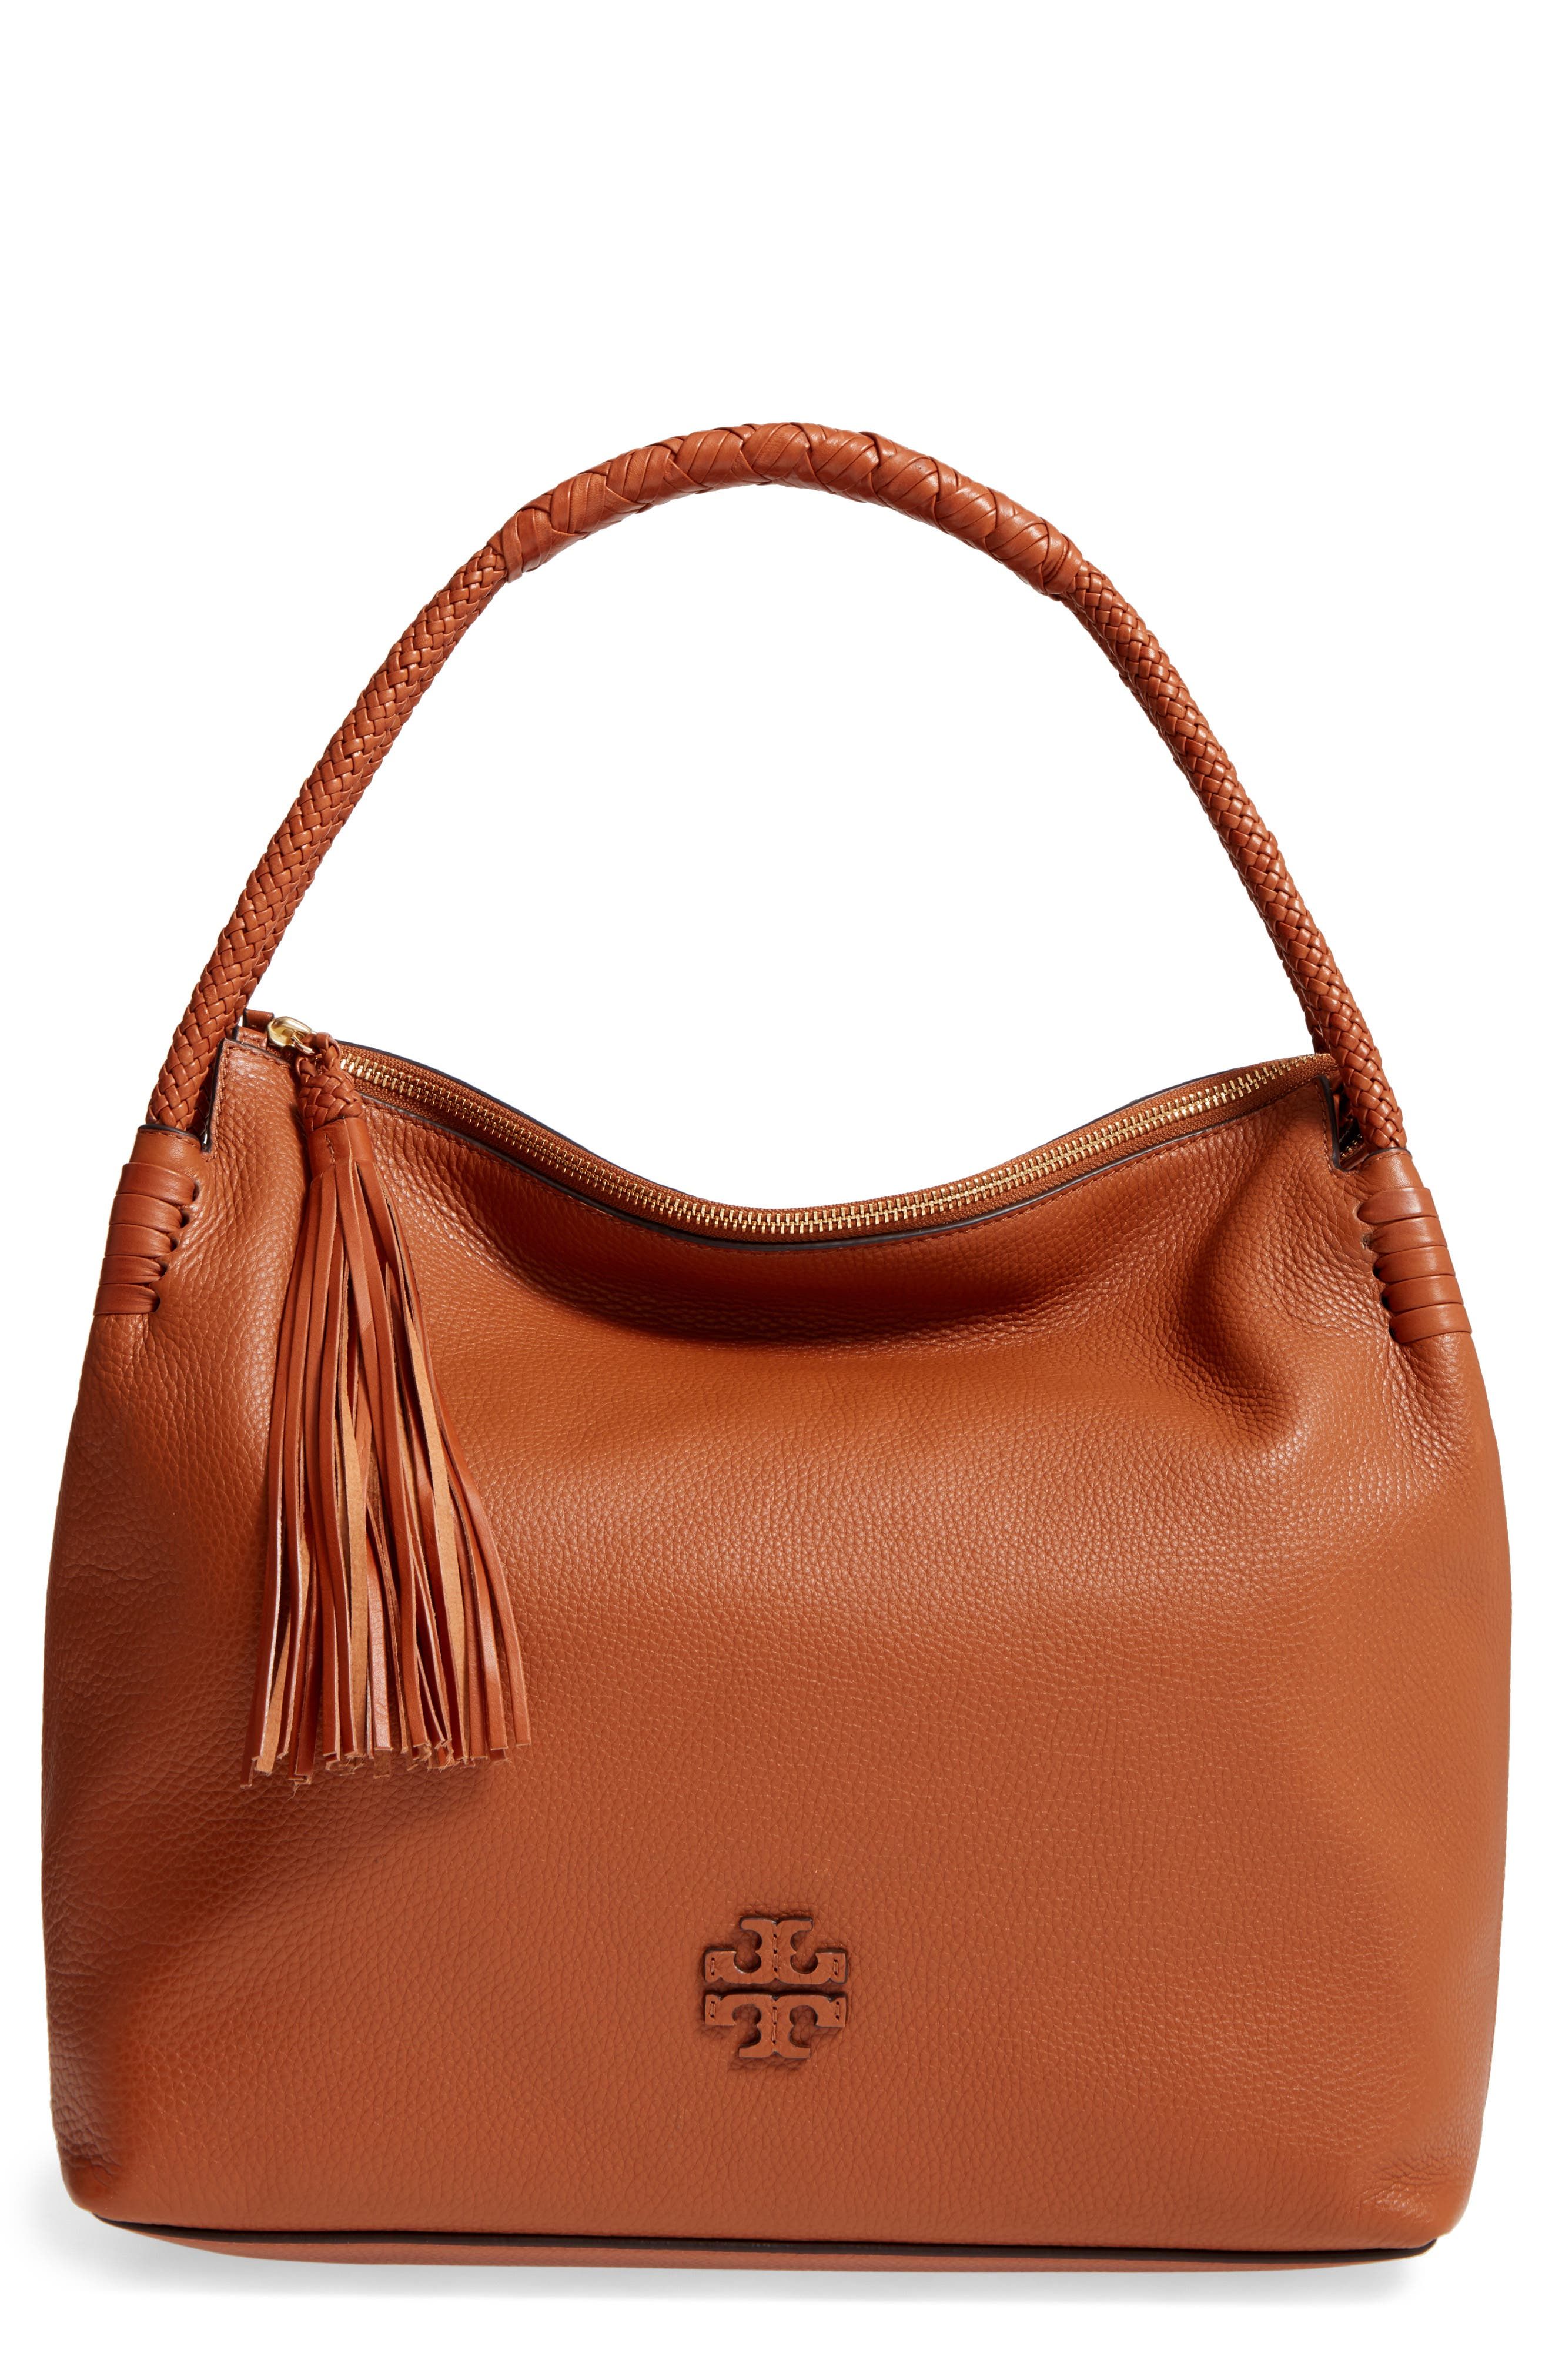 Taylor Leather Hobo Bag,                             Main thumbnail 1, color,                             Saddle